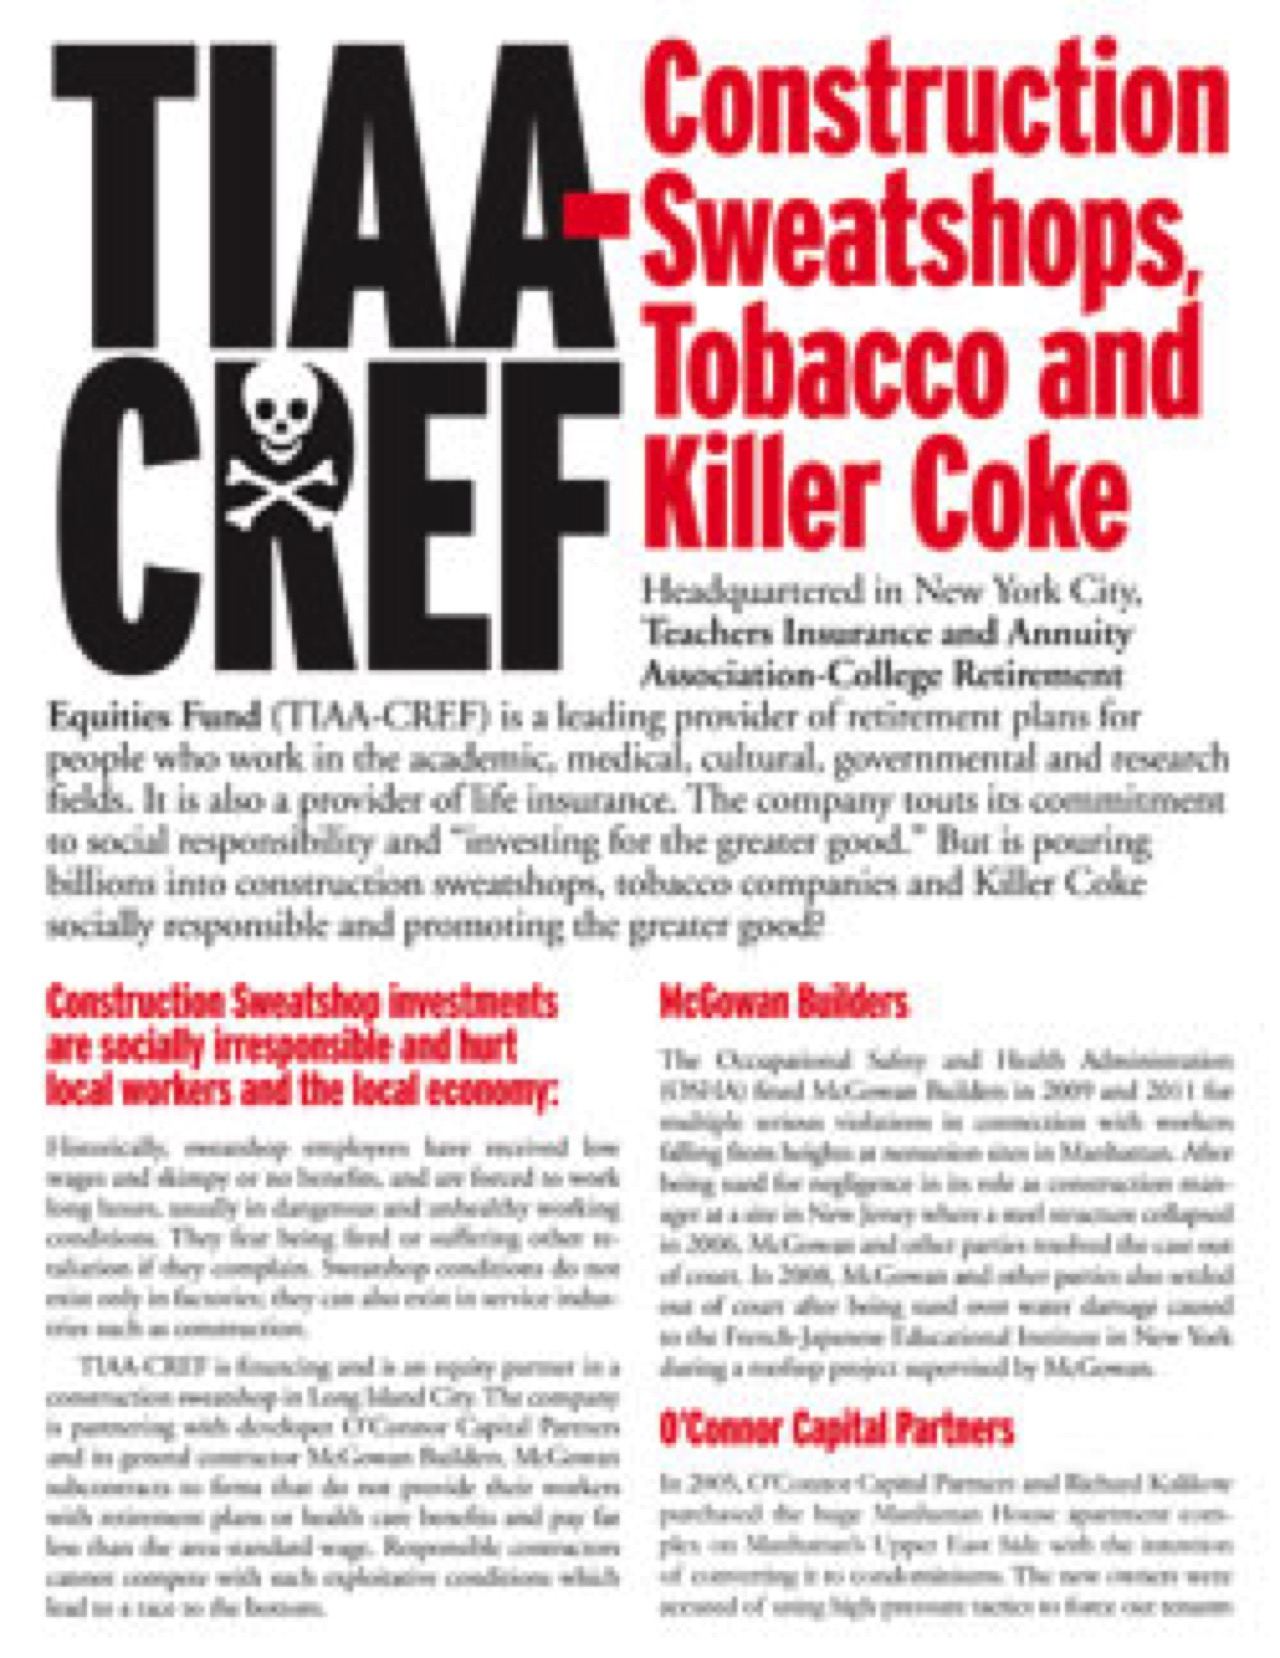 NYC District Council of Carpenters vs. TIAA-CREF: 2012-13